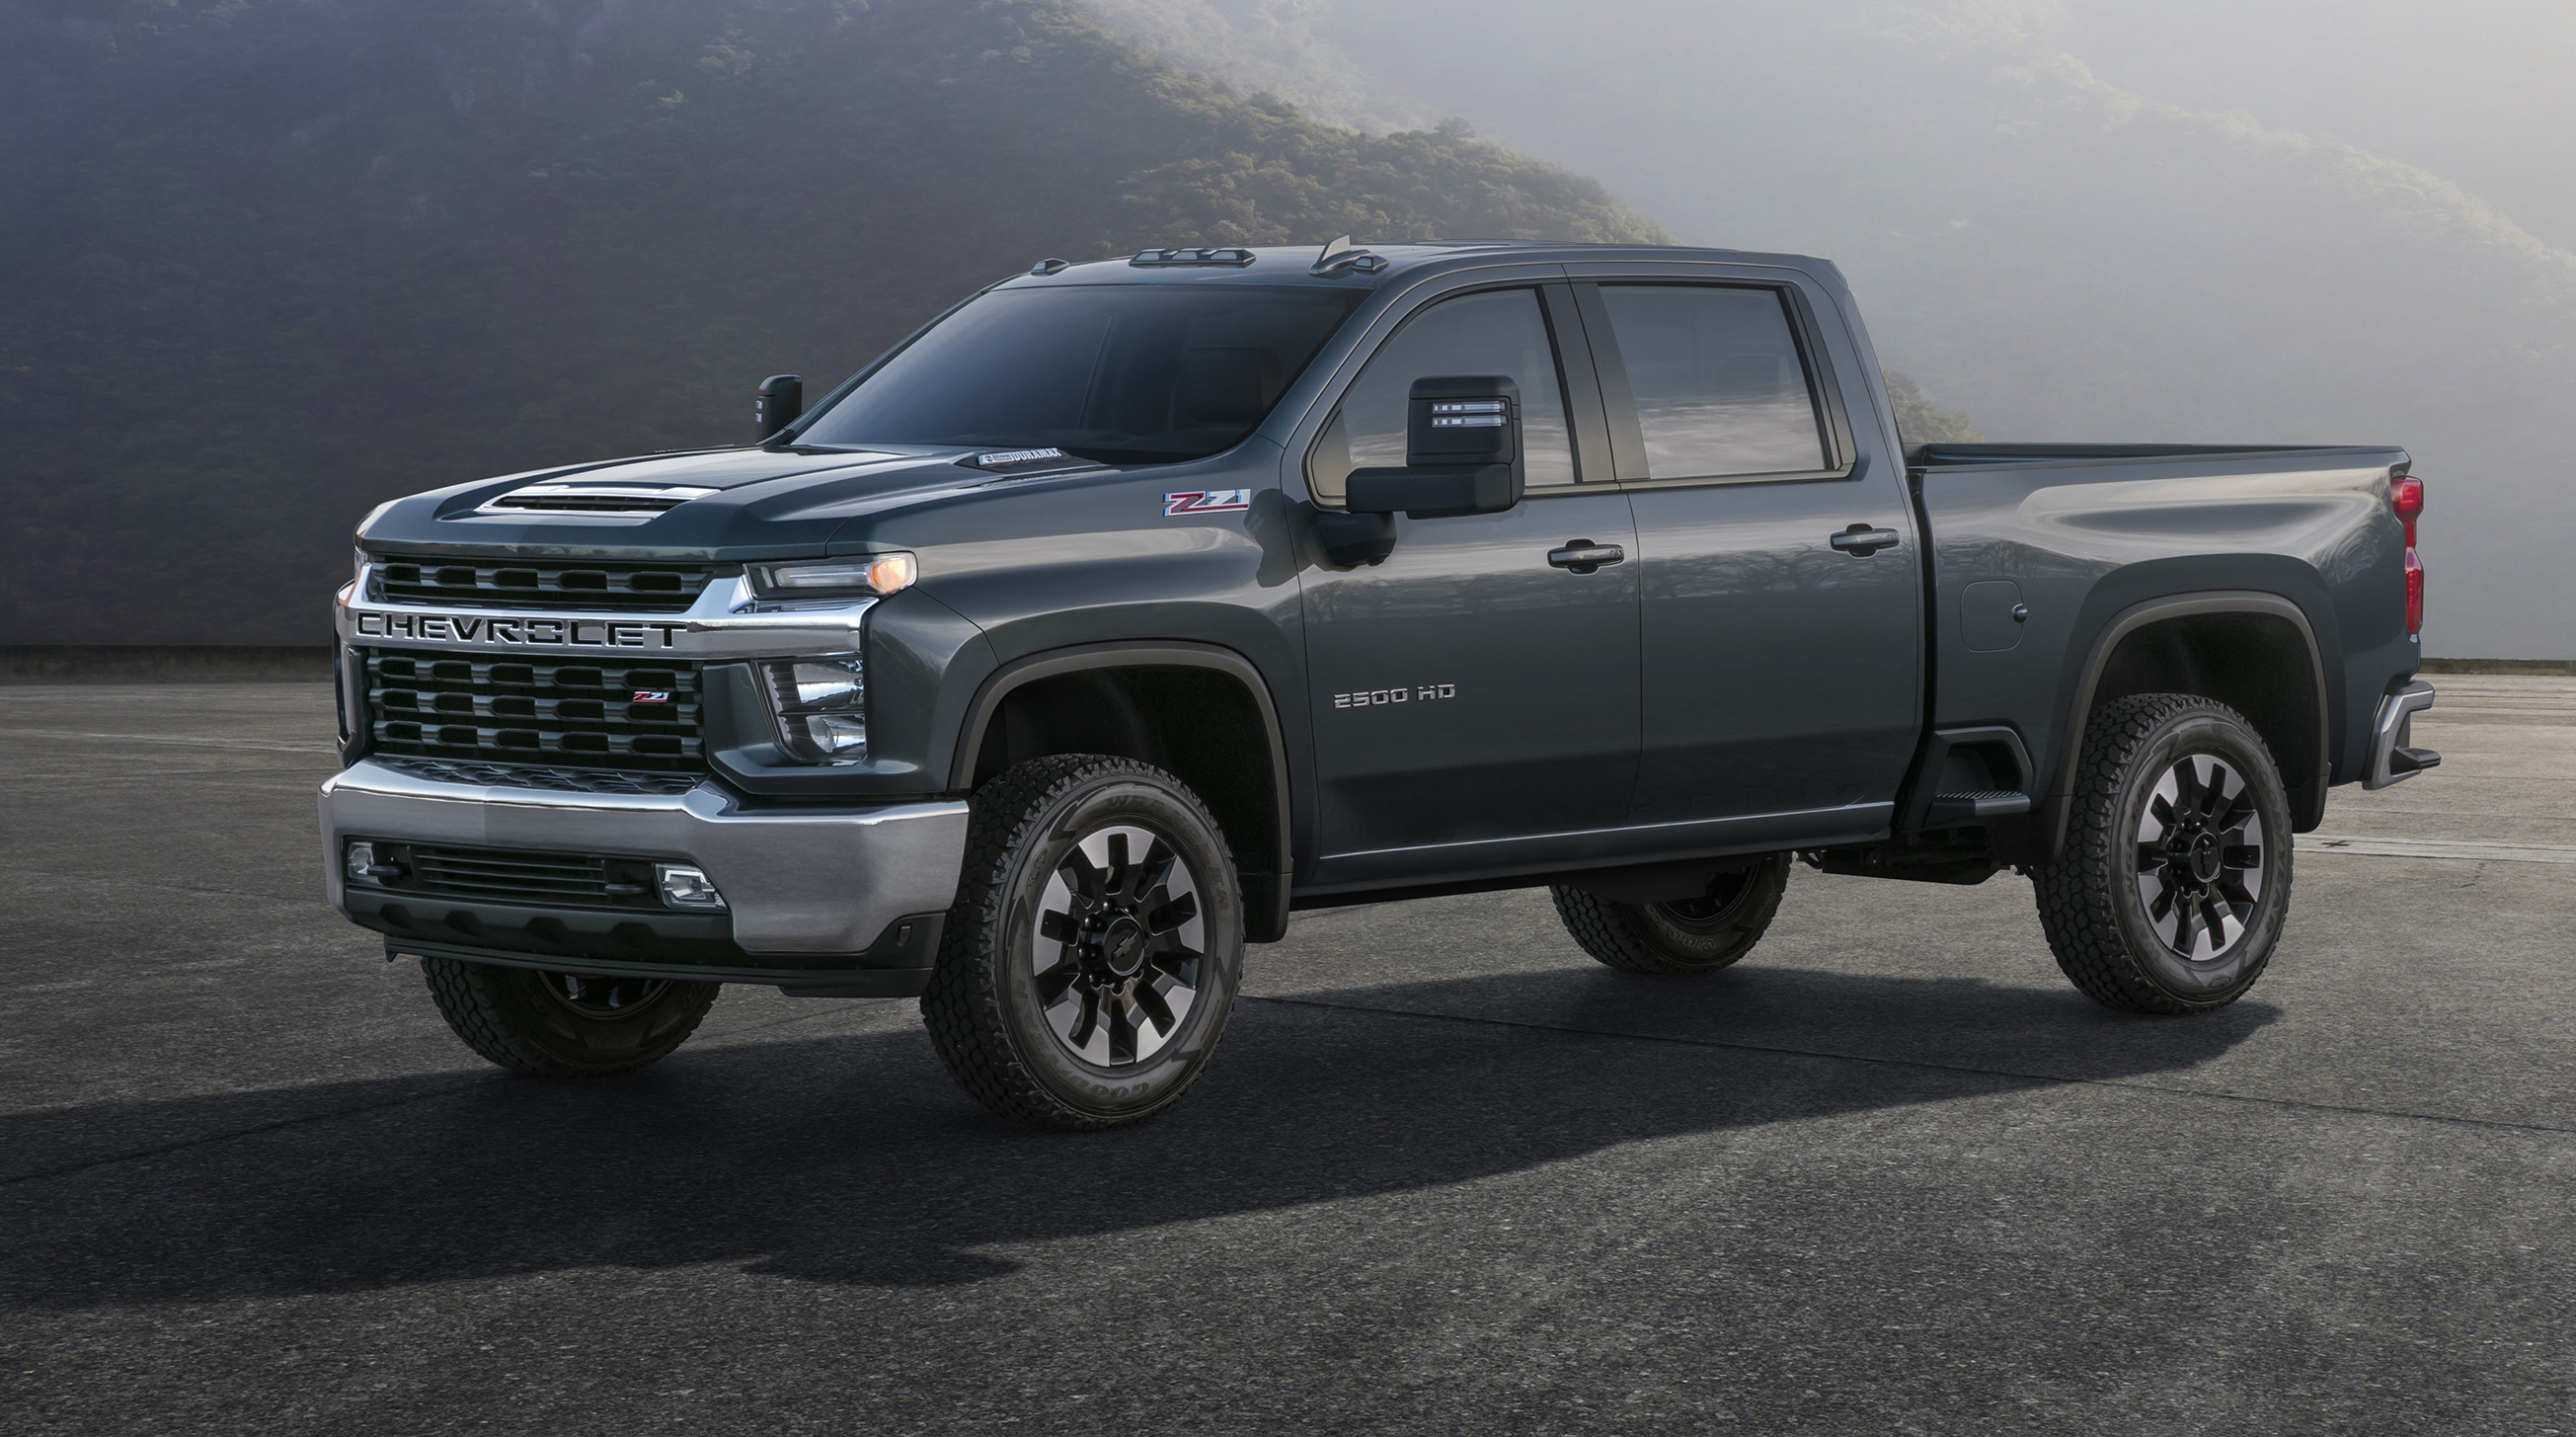 2020 Chevy Tahoe: Redesign, Changes, Engines, Debut >> 14 Things You Have To Know About The 2020 Chevrolet Silverado Hd